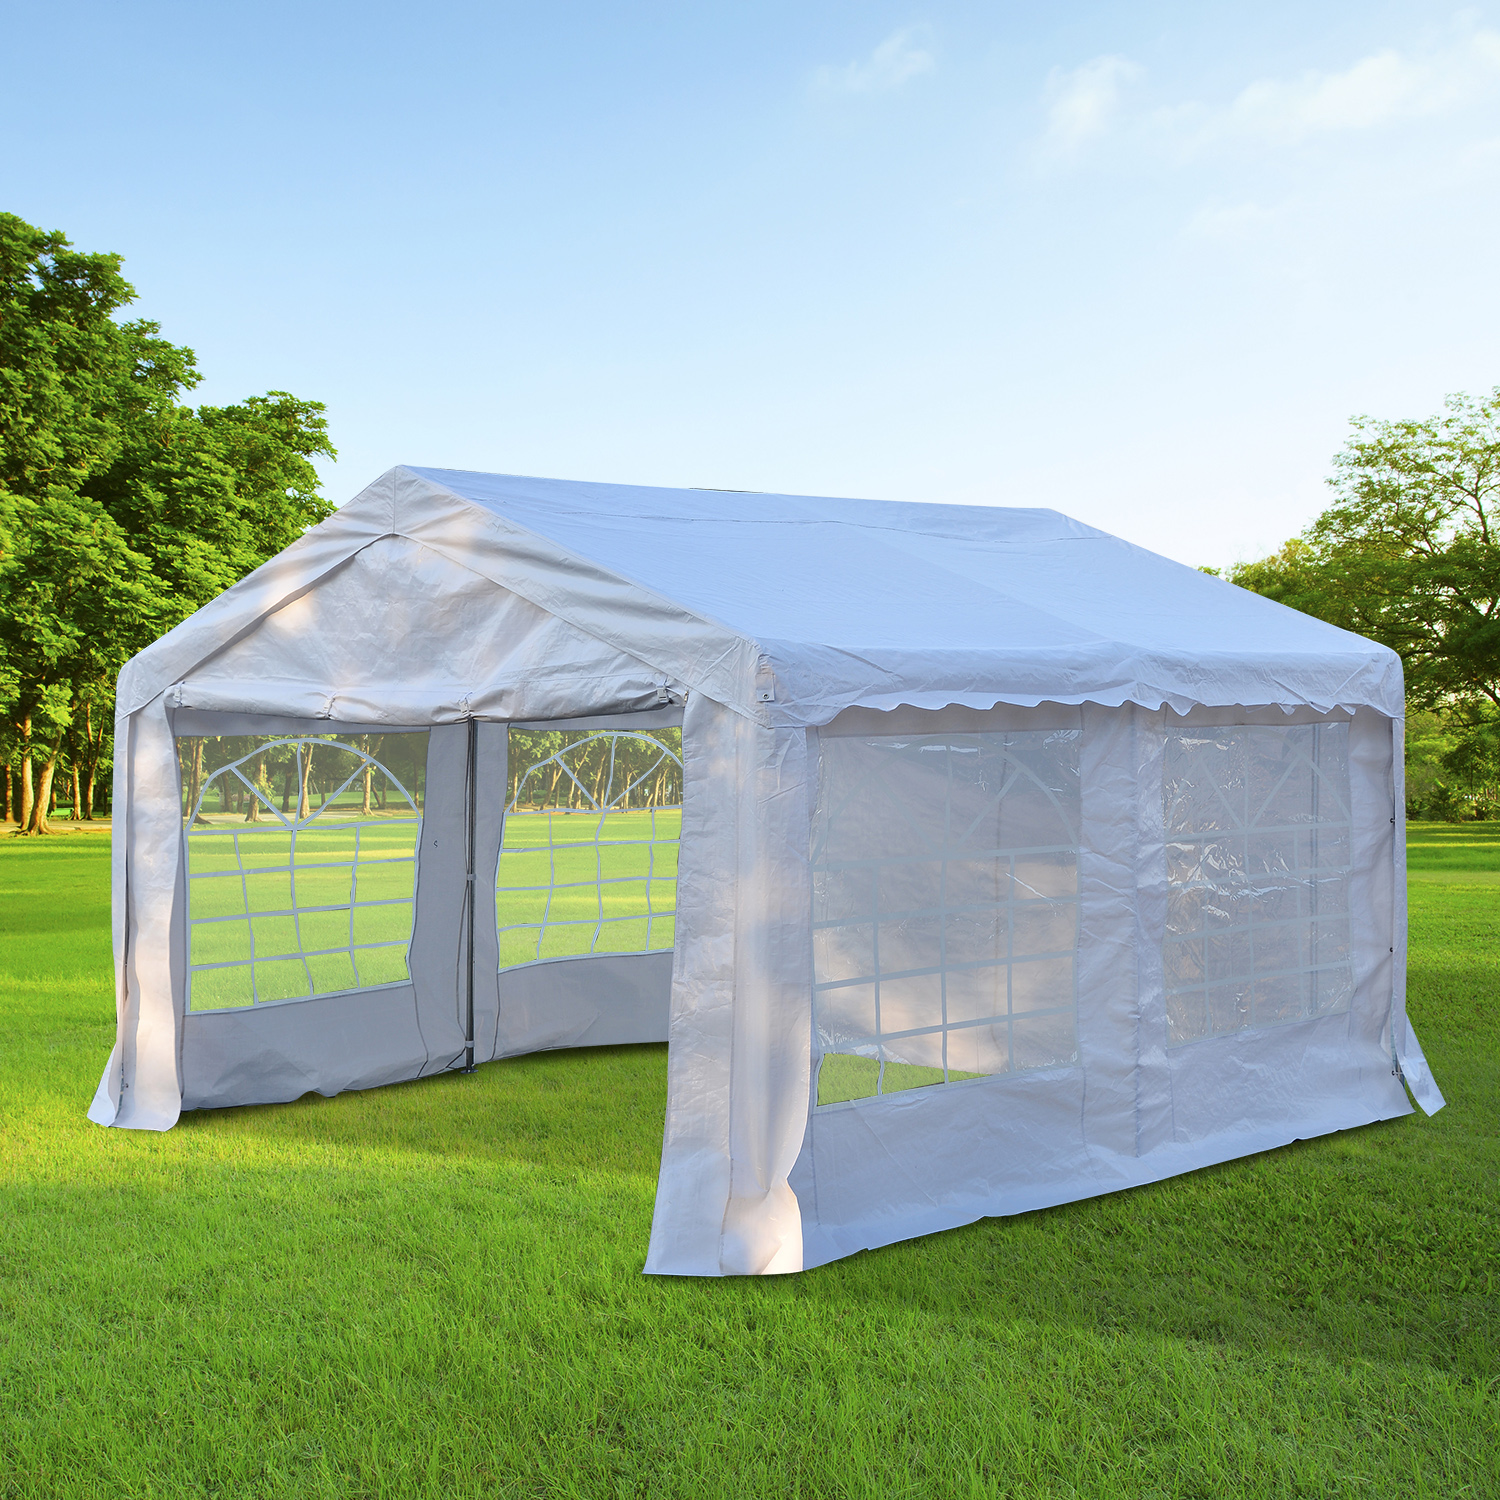 Image of CAD $259.99 Outsunny 13x13ft Heavy Duty Outdoor Carport Wedding Party Tent Patio Event Gazebo Canopy with Sidewalls White / 13'x13' Garage Portable Garden Canada 25093584435